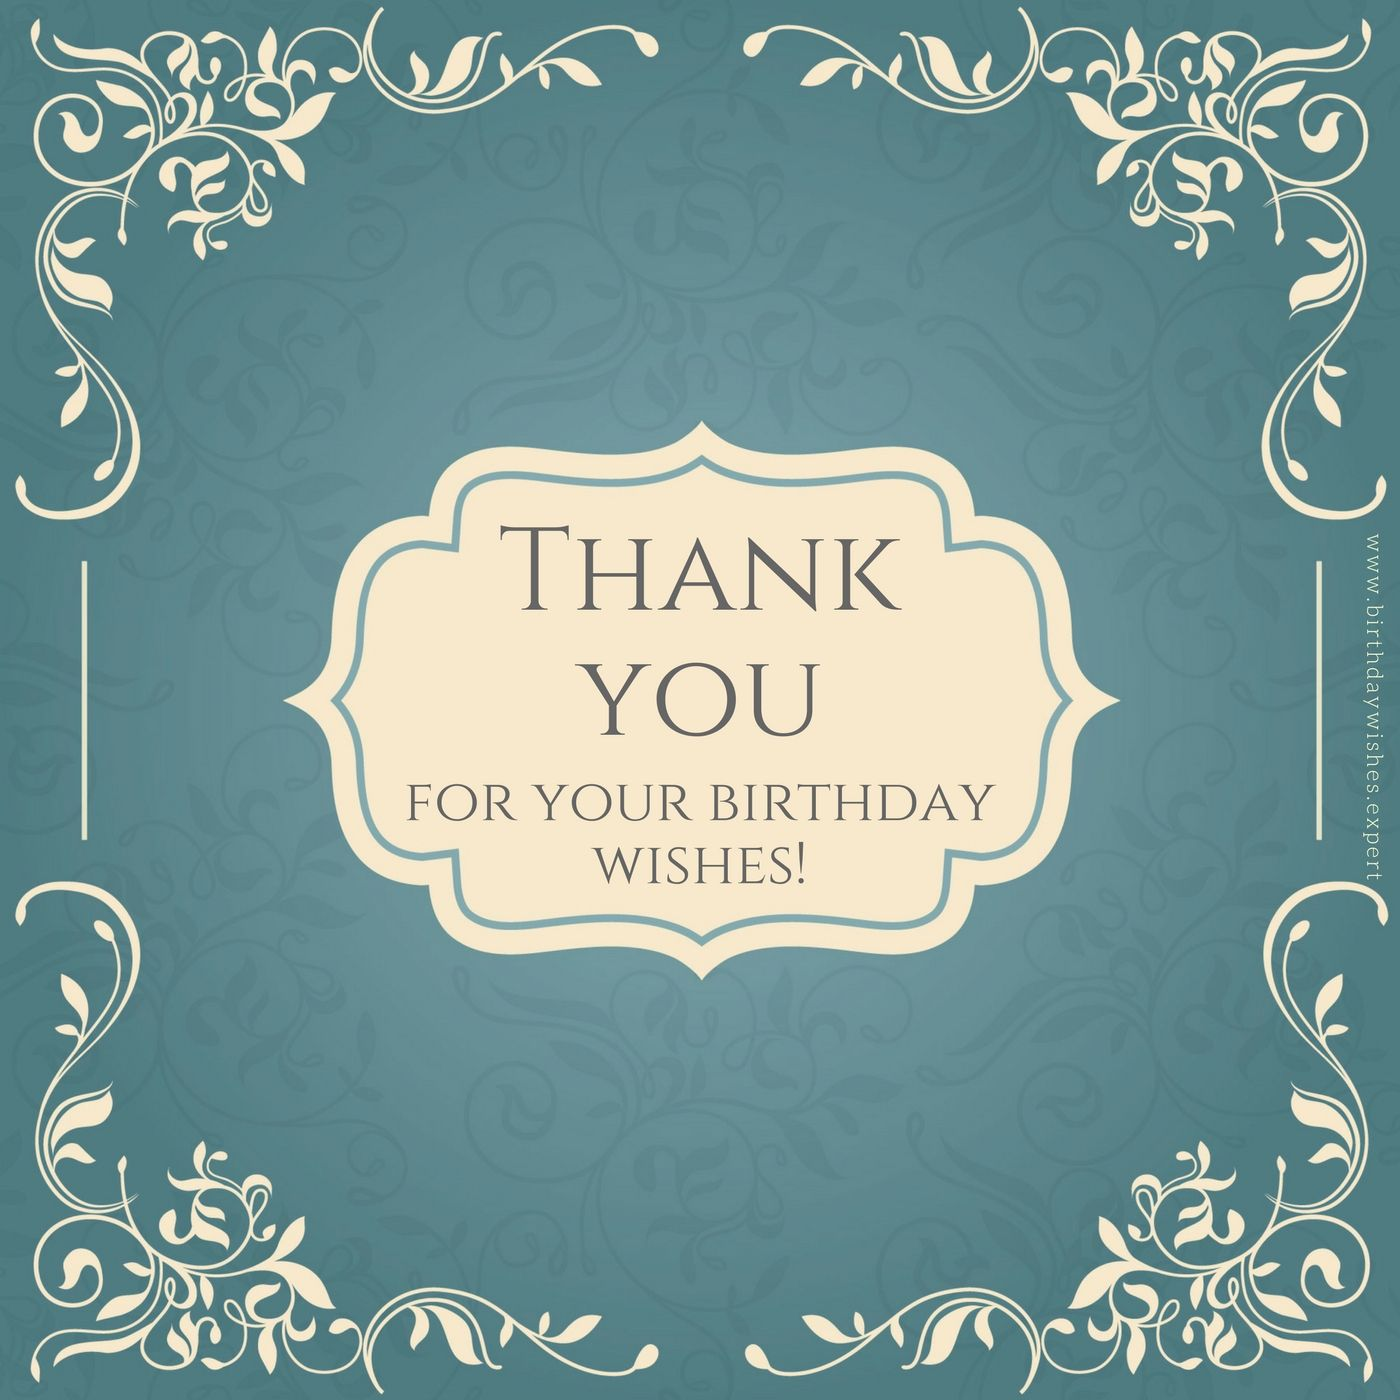 Thank you Notes for your Birthday Presents Wishes & Presence